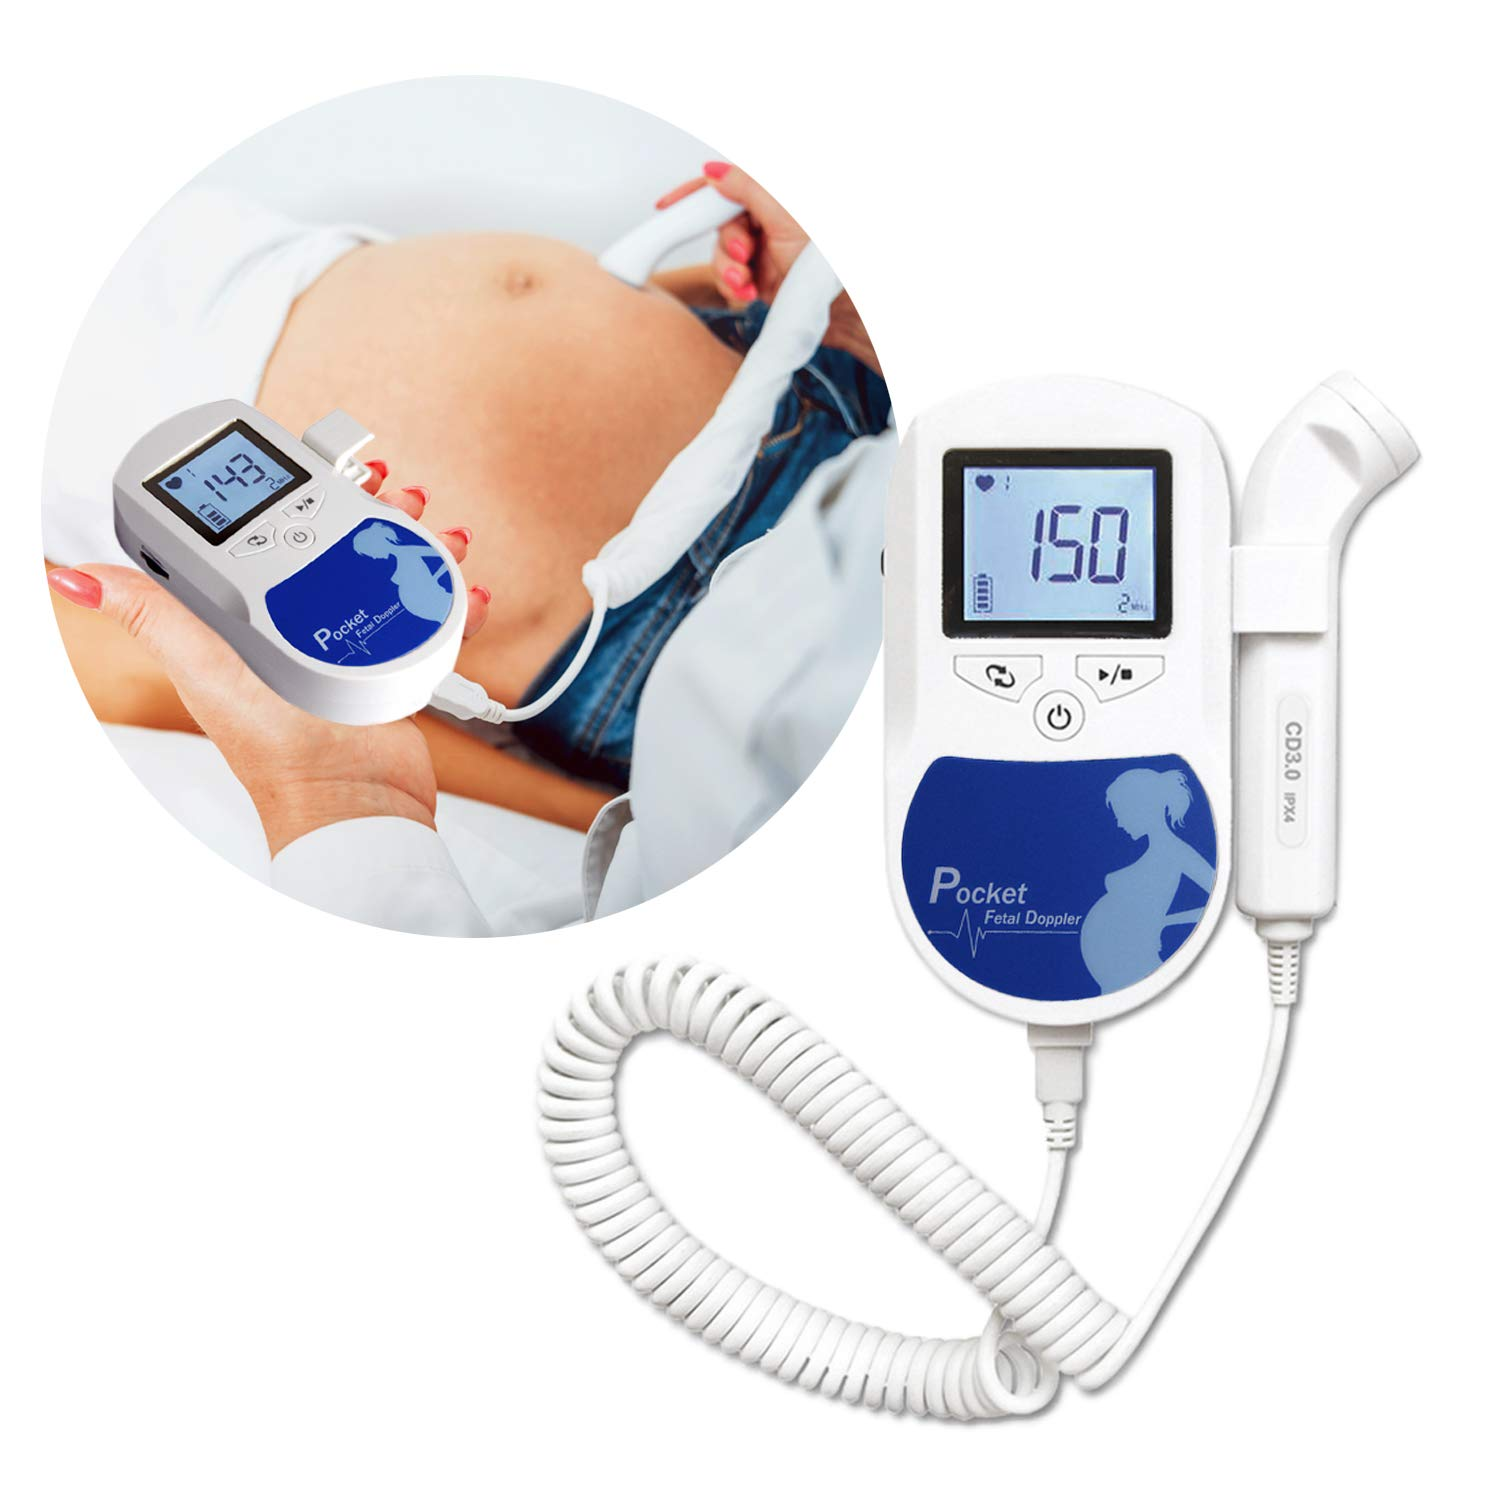 3 MHz Pocket Size Baby Echo Device - Comes with Crooked Probe and Batteries - The Perfect Reliable Gadget for Your Baby by Happy Toes (Image #4)